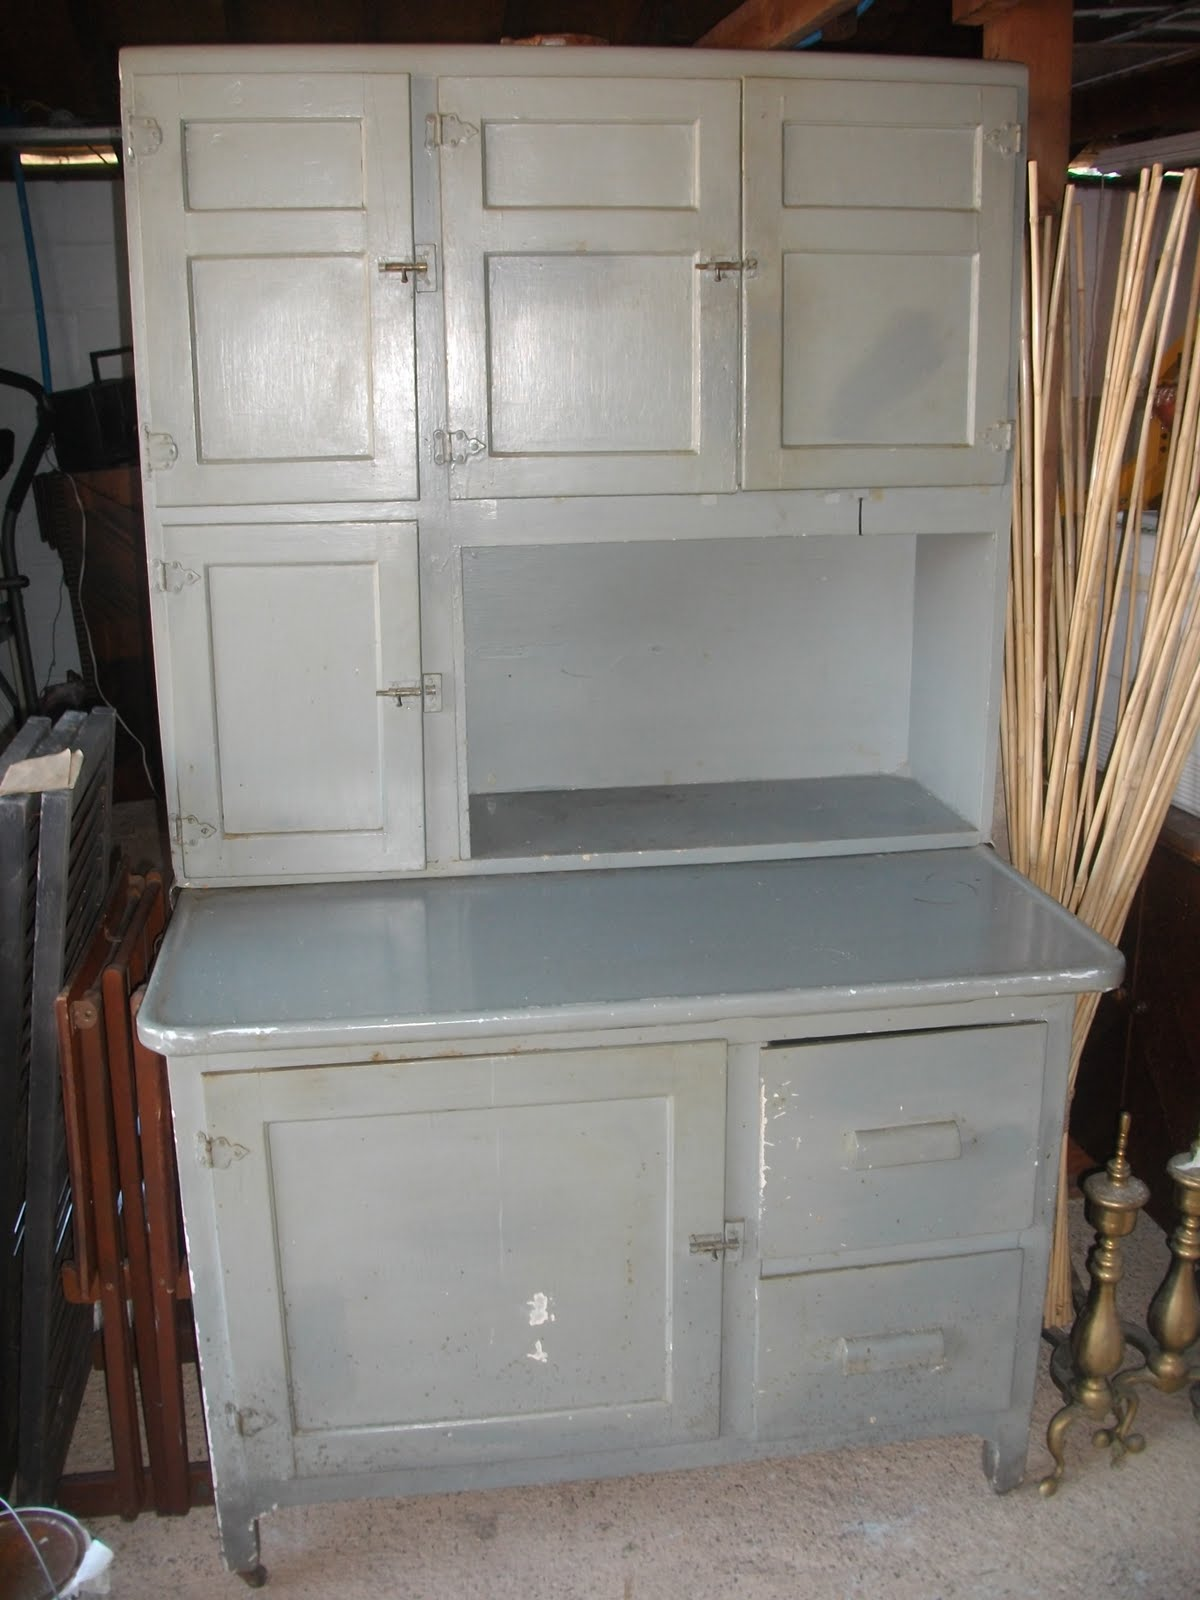 this is it in its original state a grey enamel paint covered the